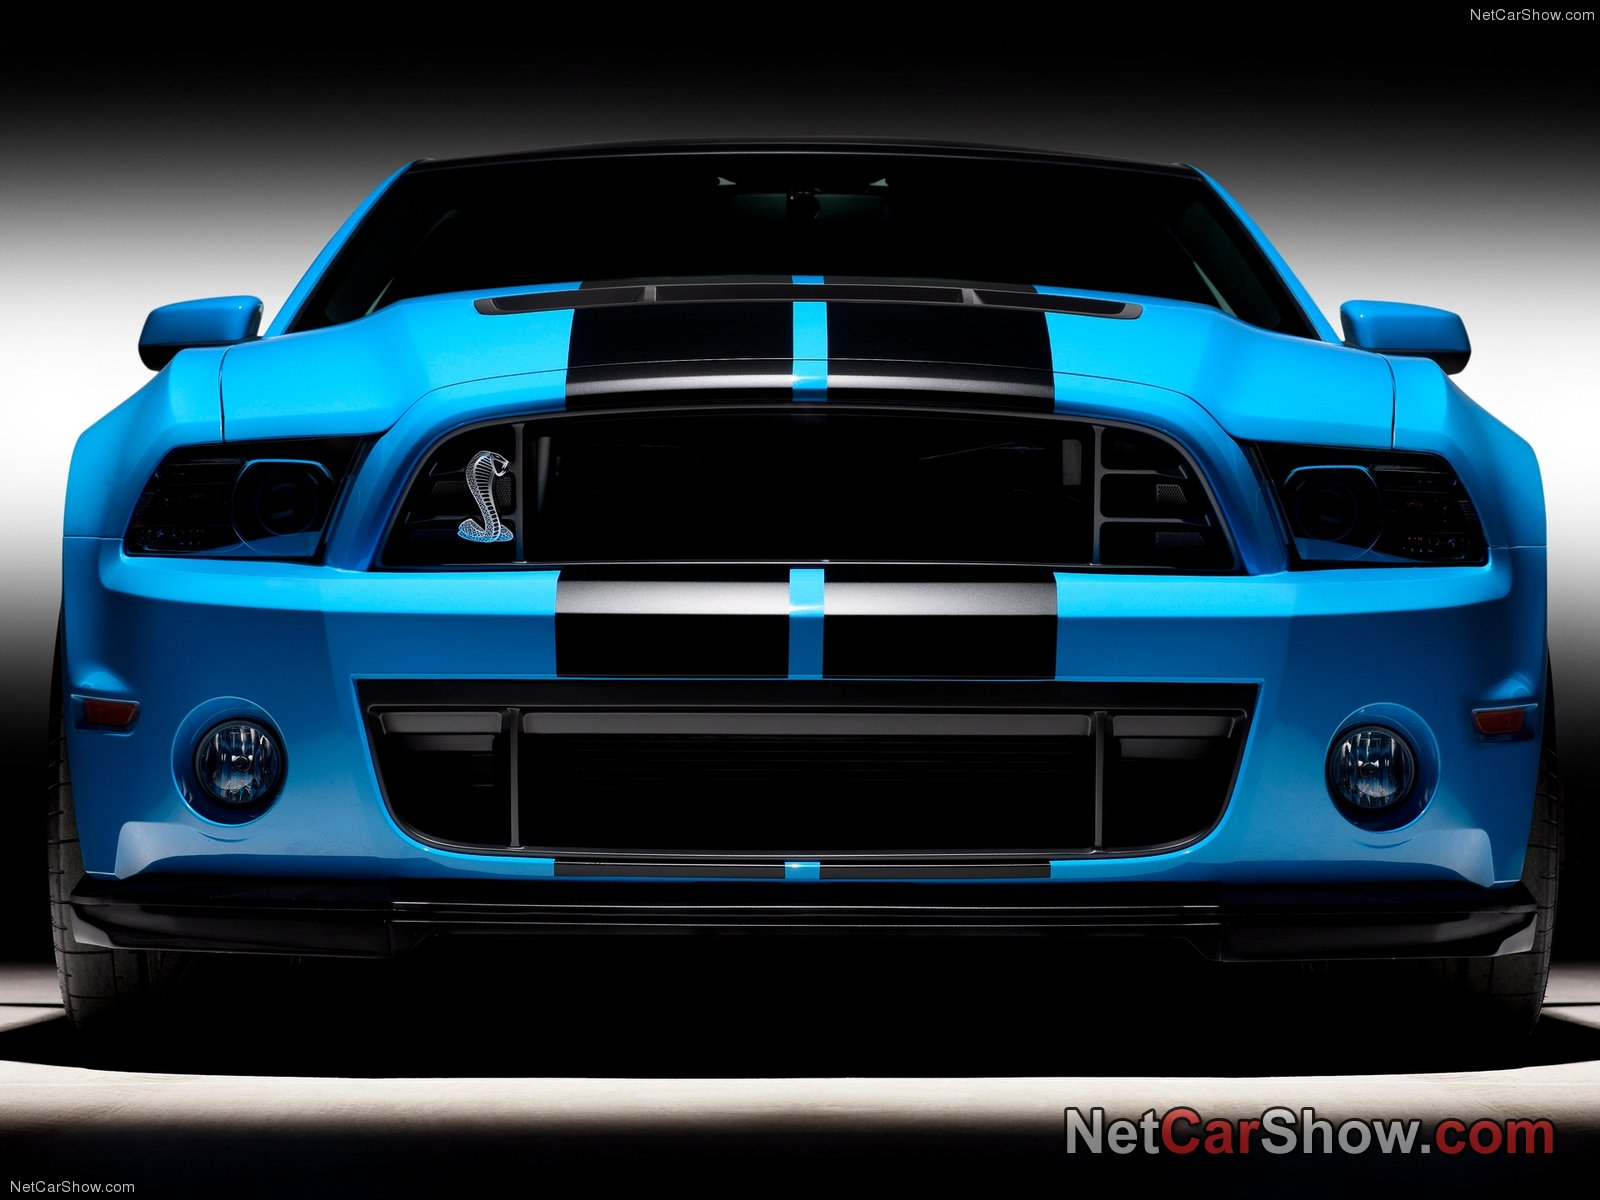 shelby mustangs 20 pictures of new shelby mustang gt500 2013. Black Bedroom Furniture Sets. Home Design Ideas